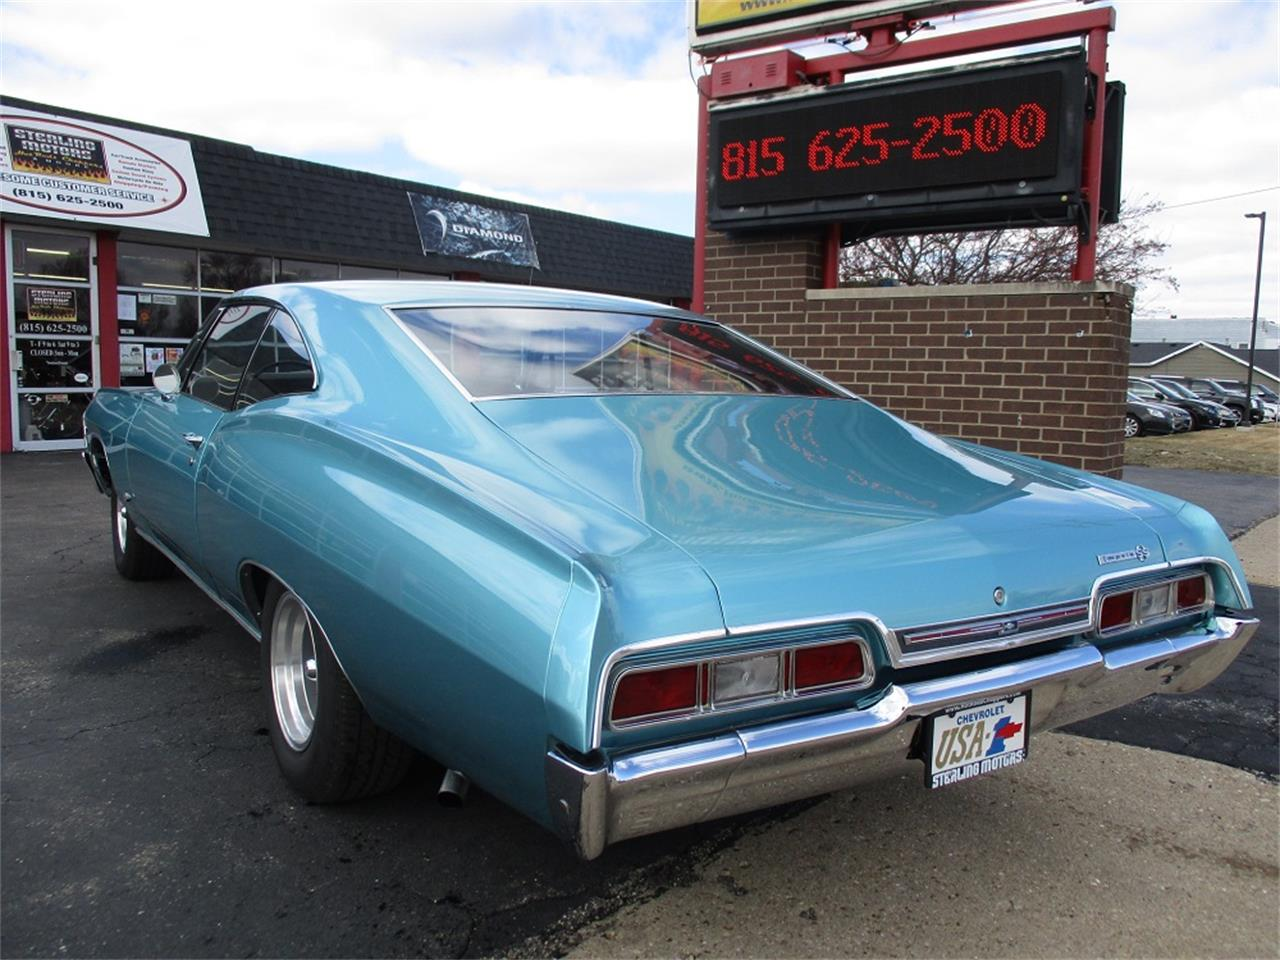 1967 Chevrolet Impala SS (CC-1200352) for sale in Sterling, Illinois